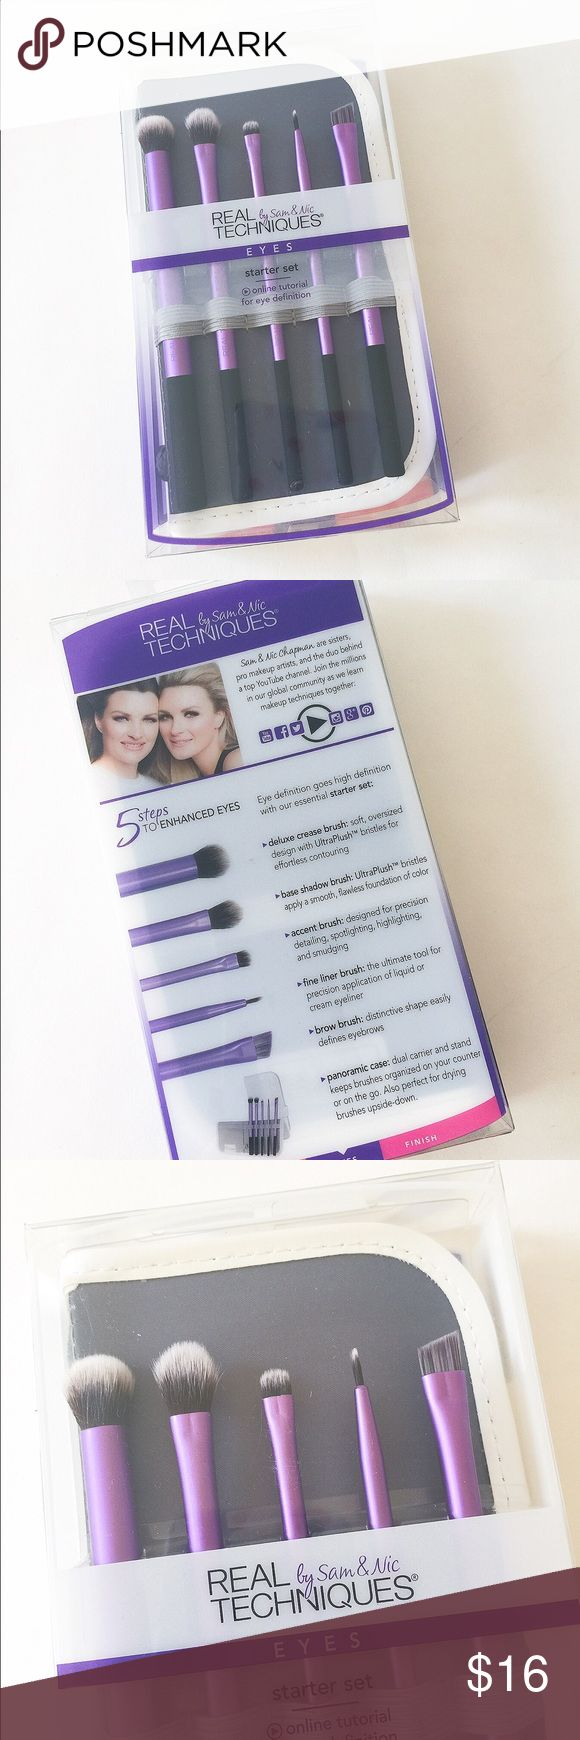 🆕NIB Real Techniques eye 5 brushes kit/set + case Brand new in box! Include 5 eye brushes and 1 case. Please see pics for details. ❌no trade ❌no lowball offers!!! Real Techniques Makeup Brushes & Tools